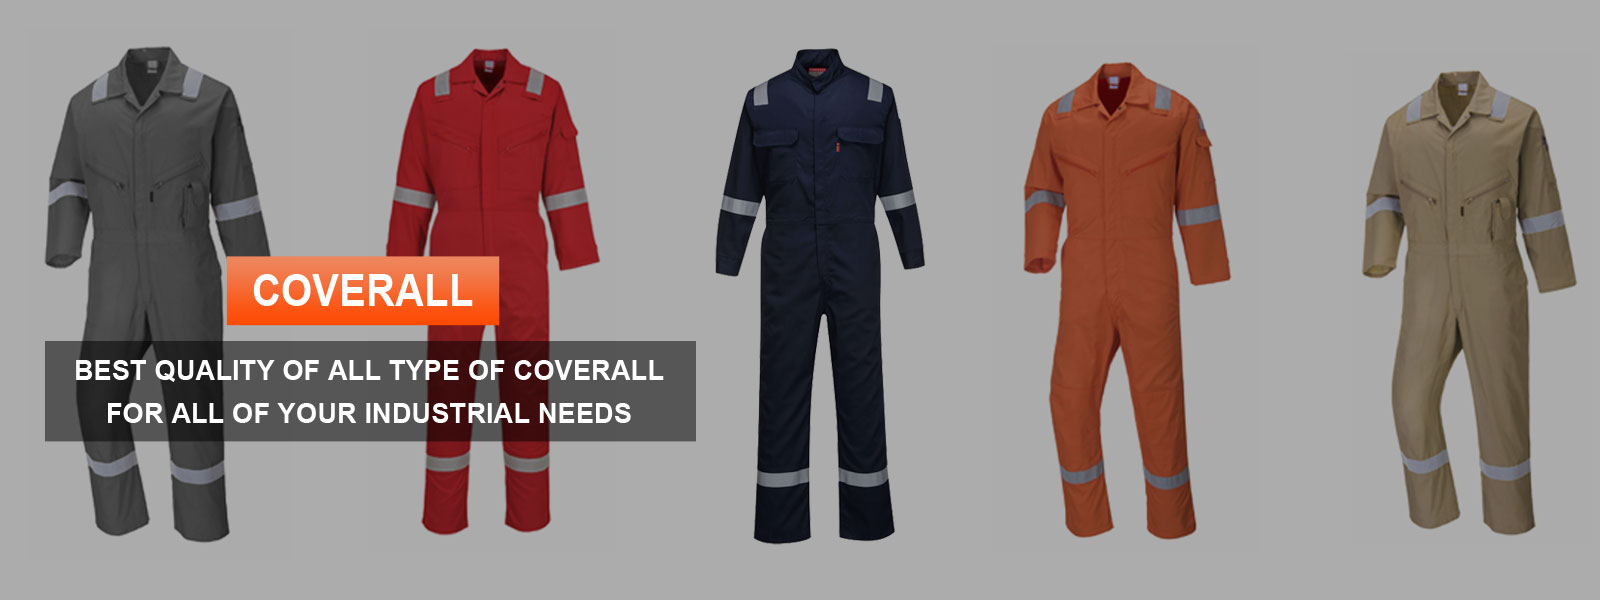 Coverall Manufacturers in New zealand